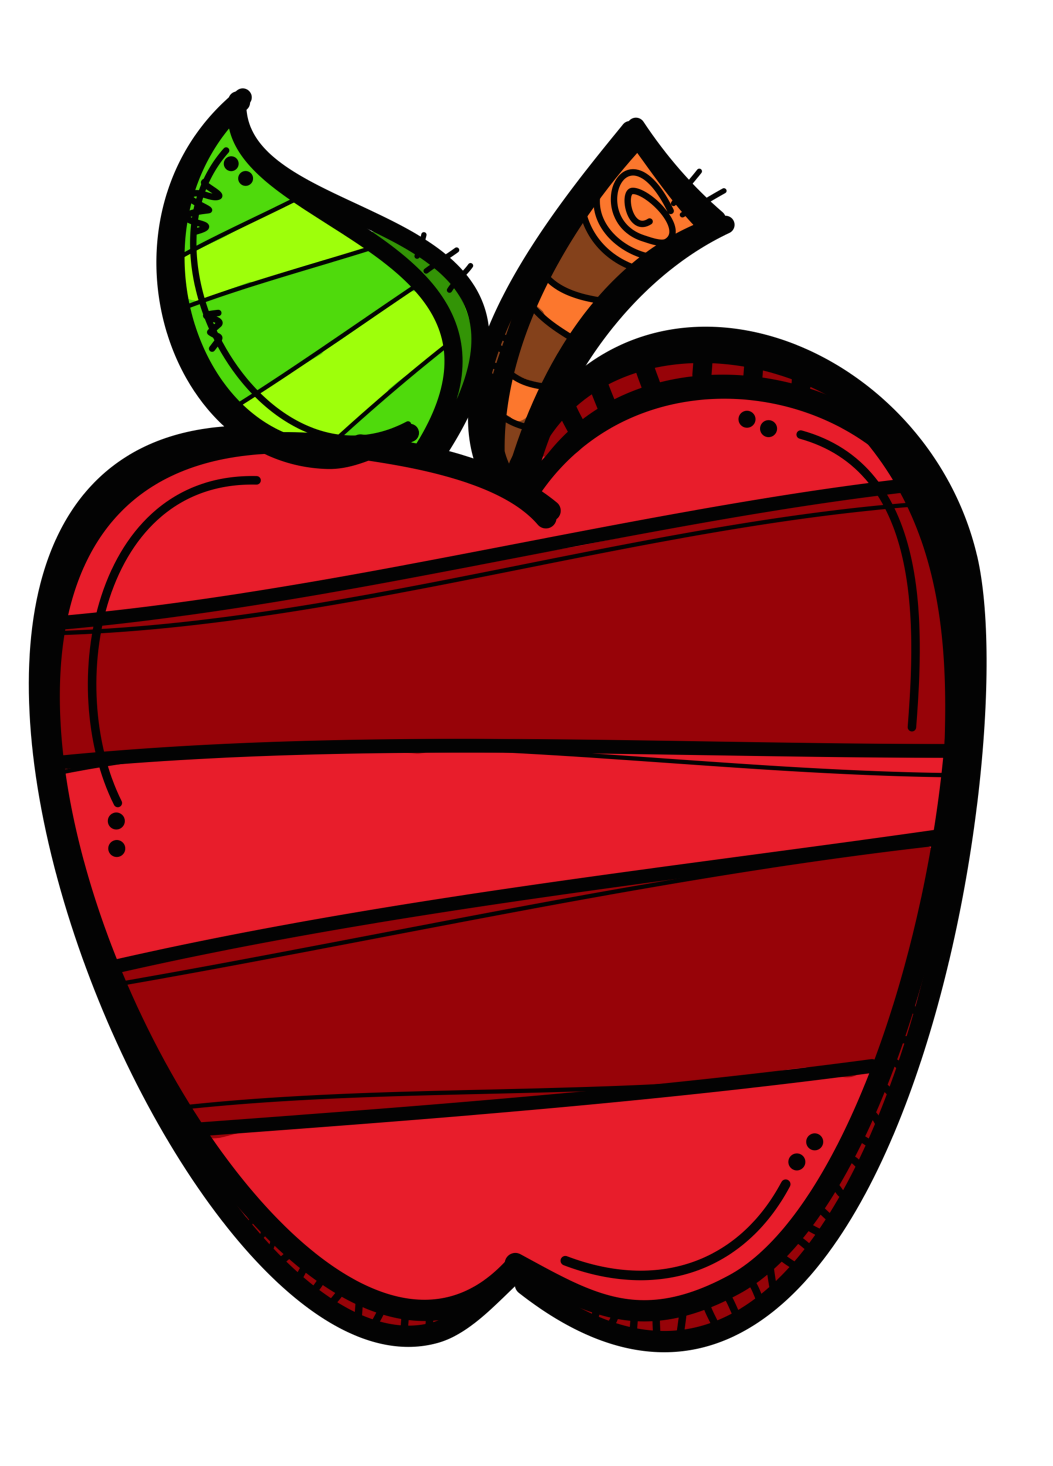 Apple on desk clipart svg royalty free stock Pin by Kathleen Cummings on Art Ideas | Pinterest | Apples, Clip art ... svg royalty free stock